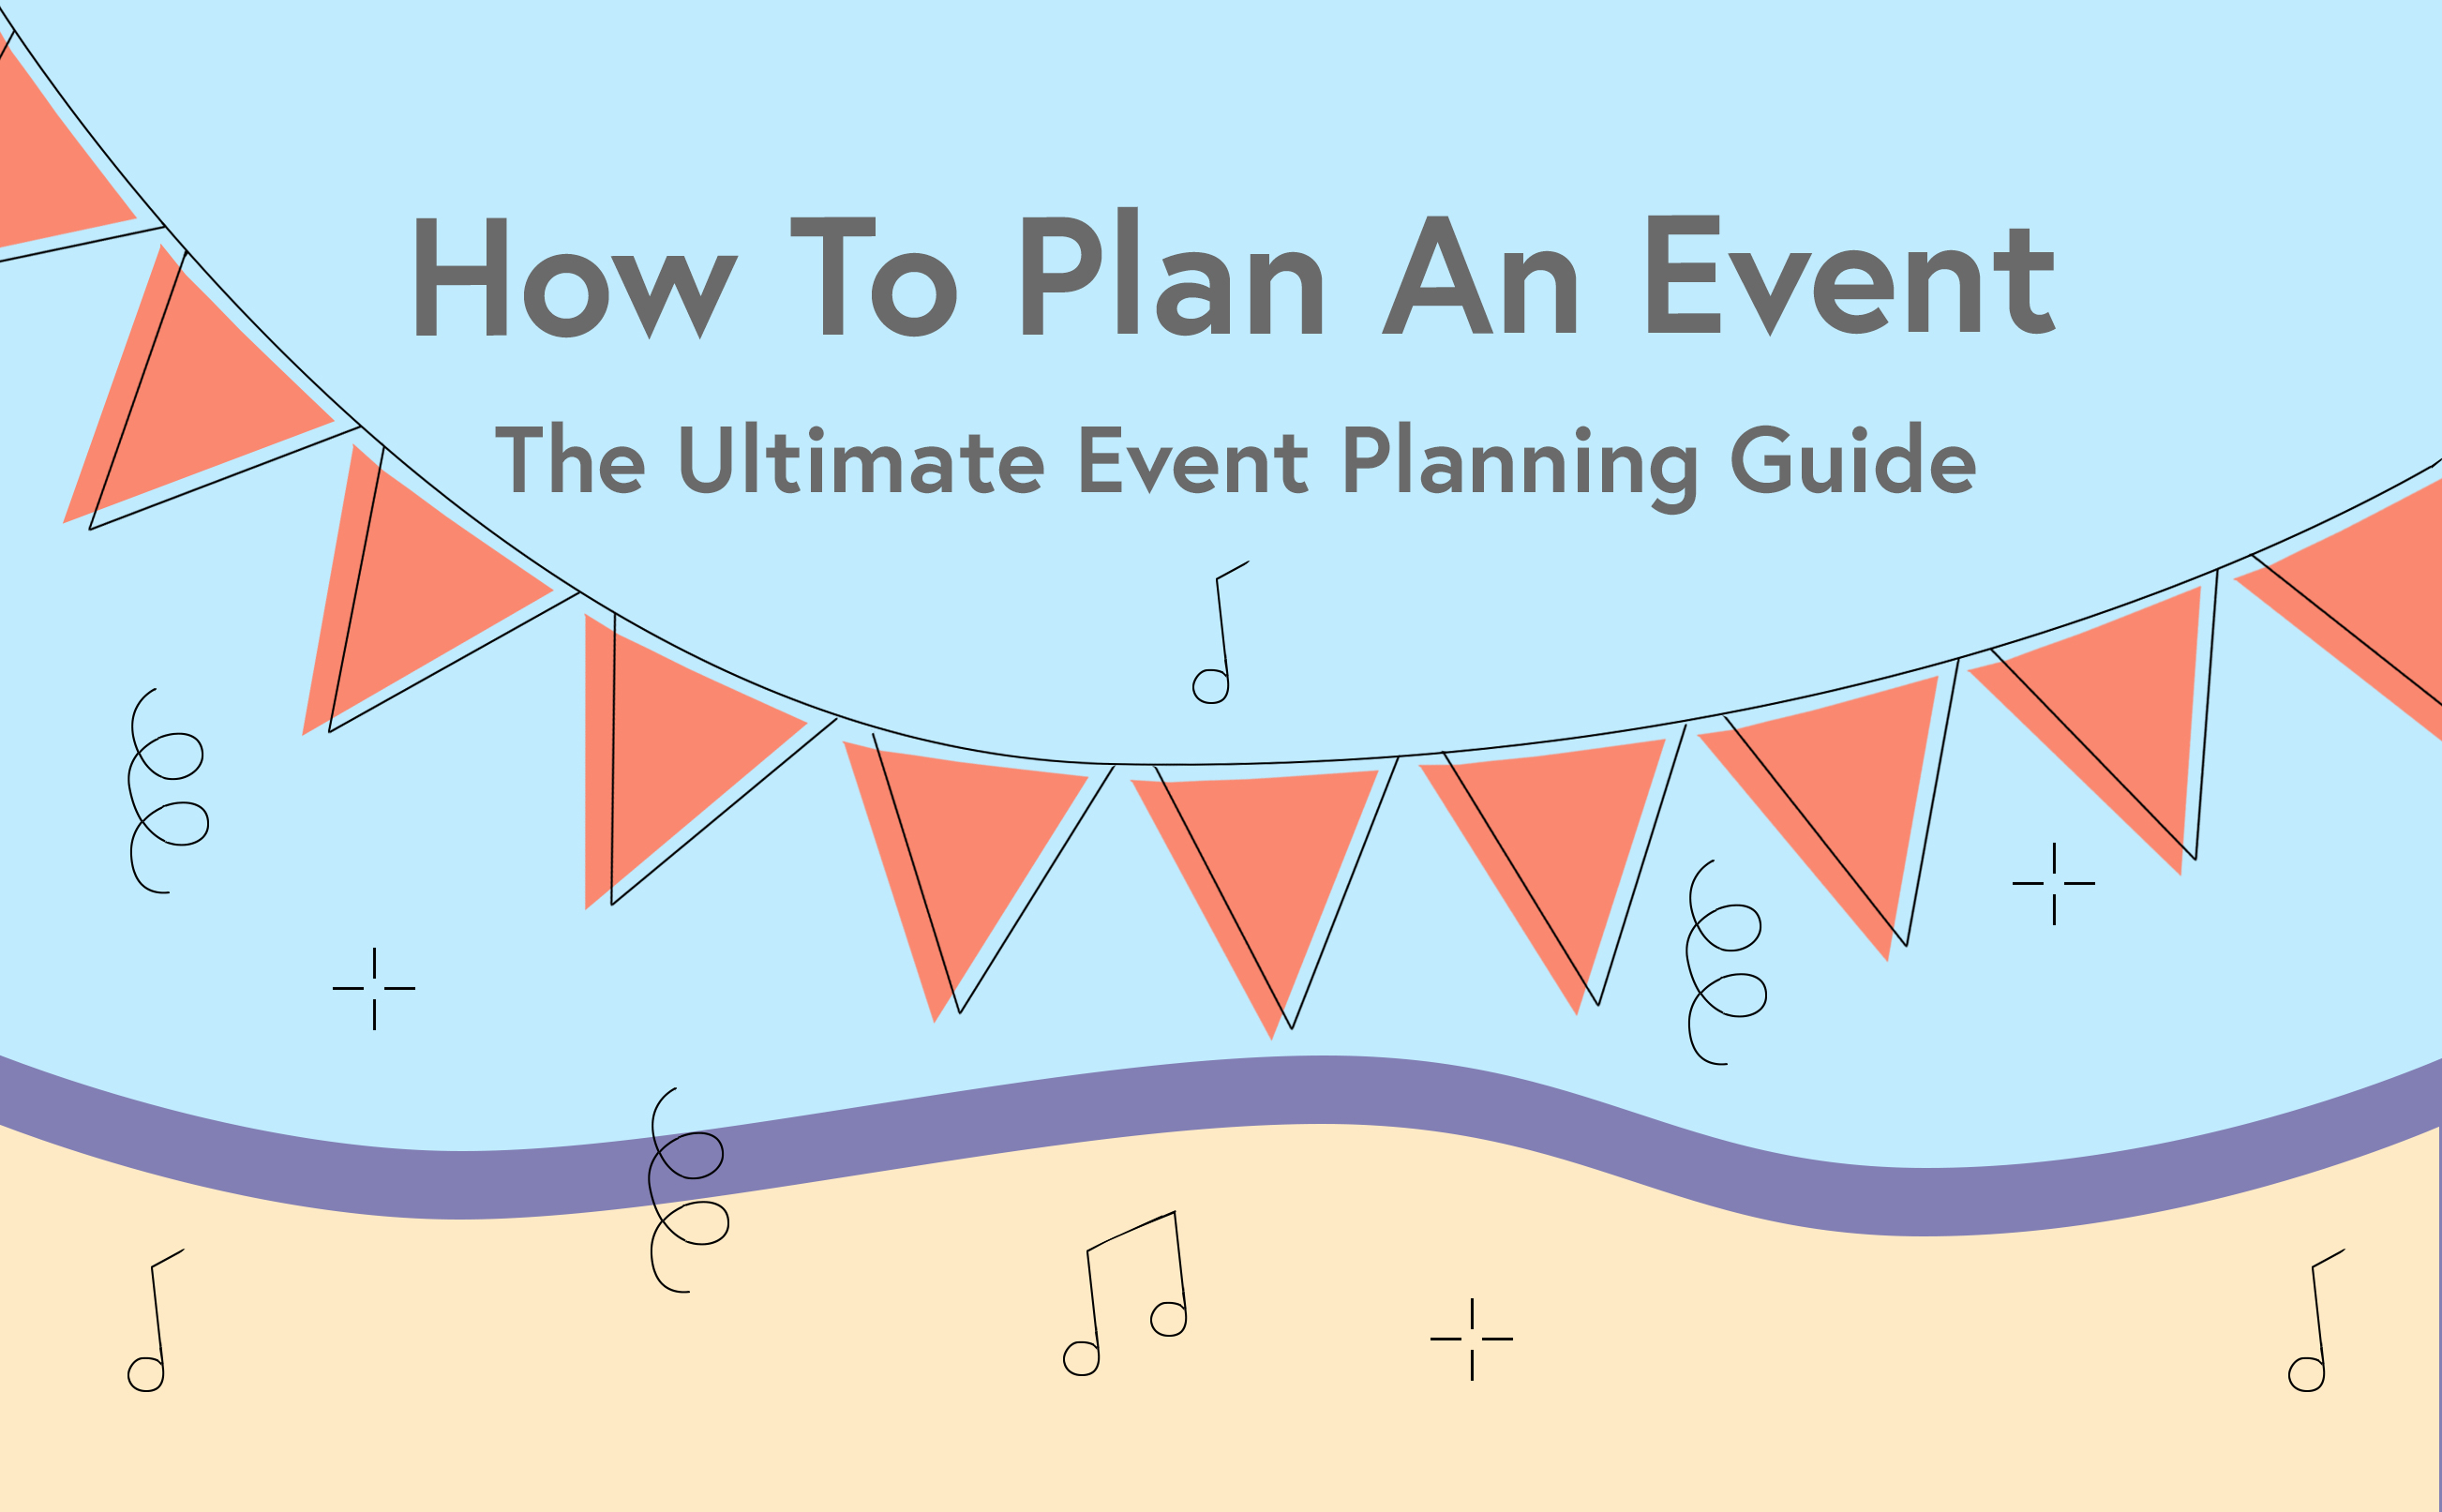 The Ultimate Event Planning Guide How To Plan An Event